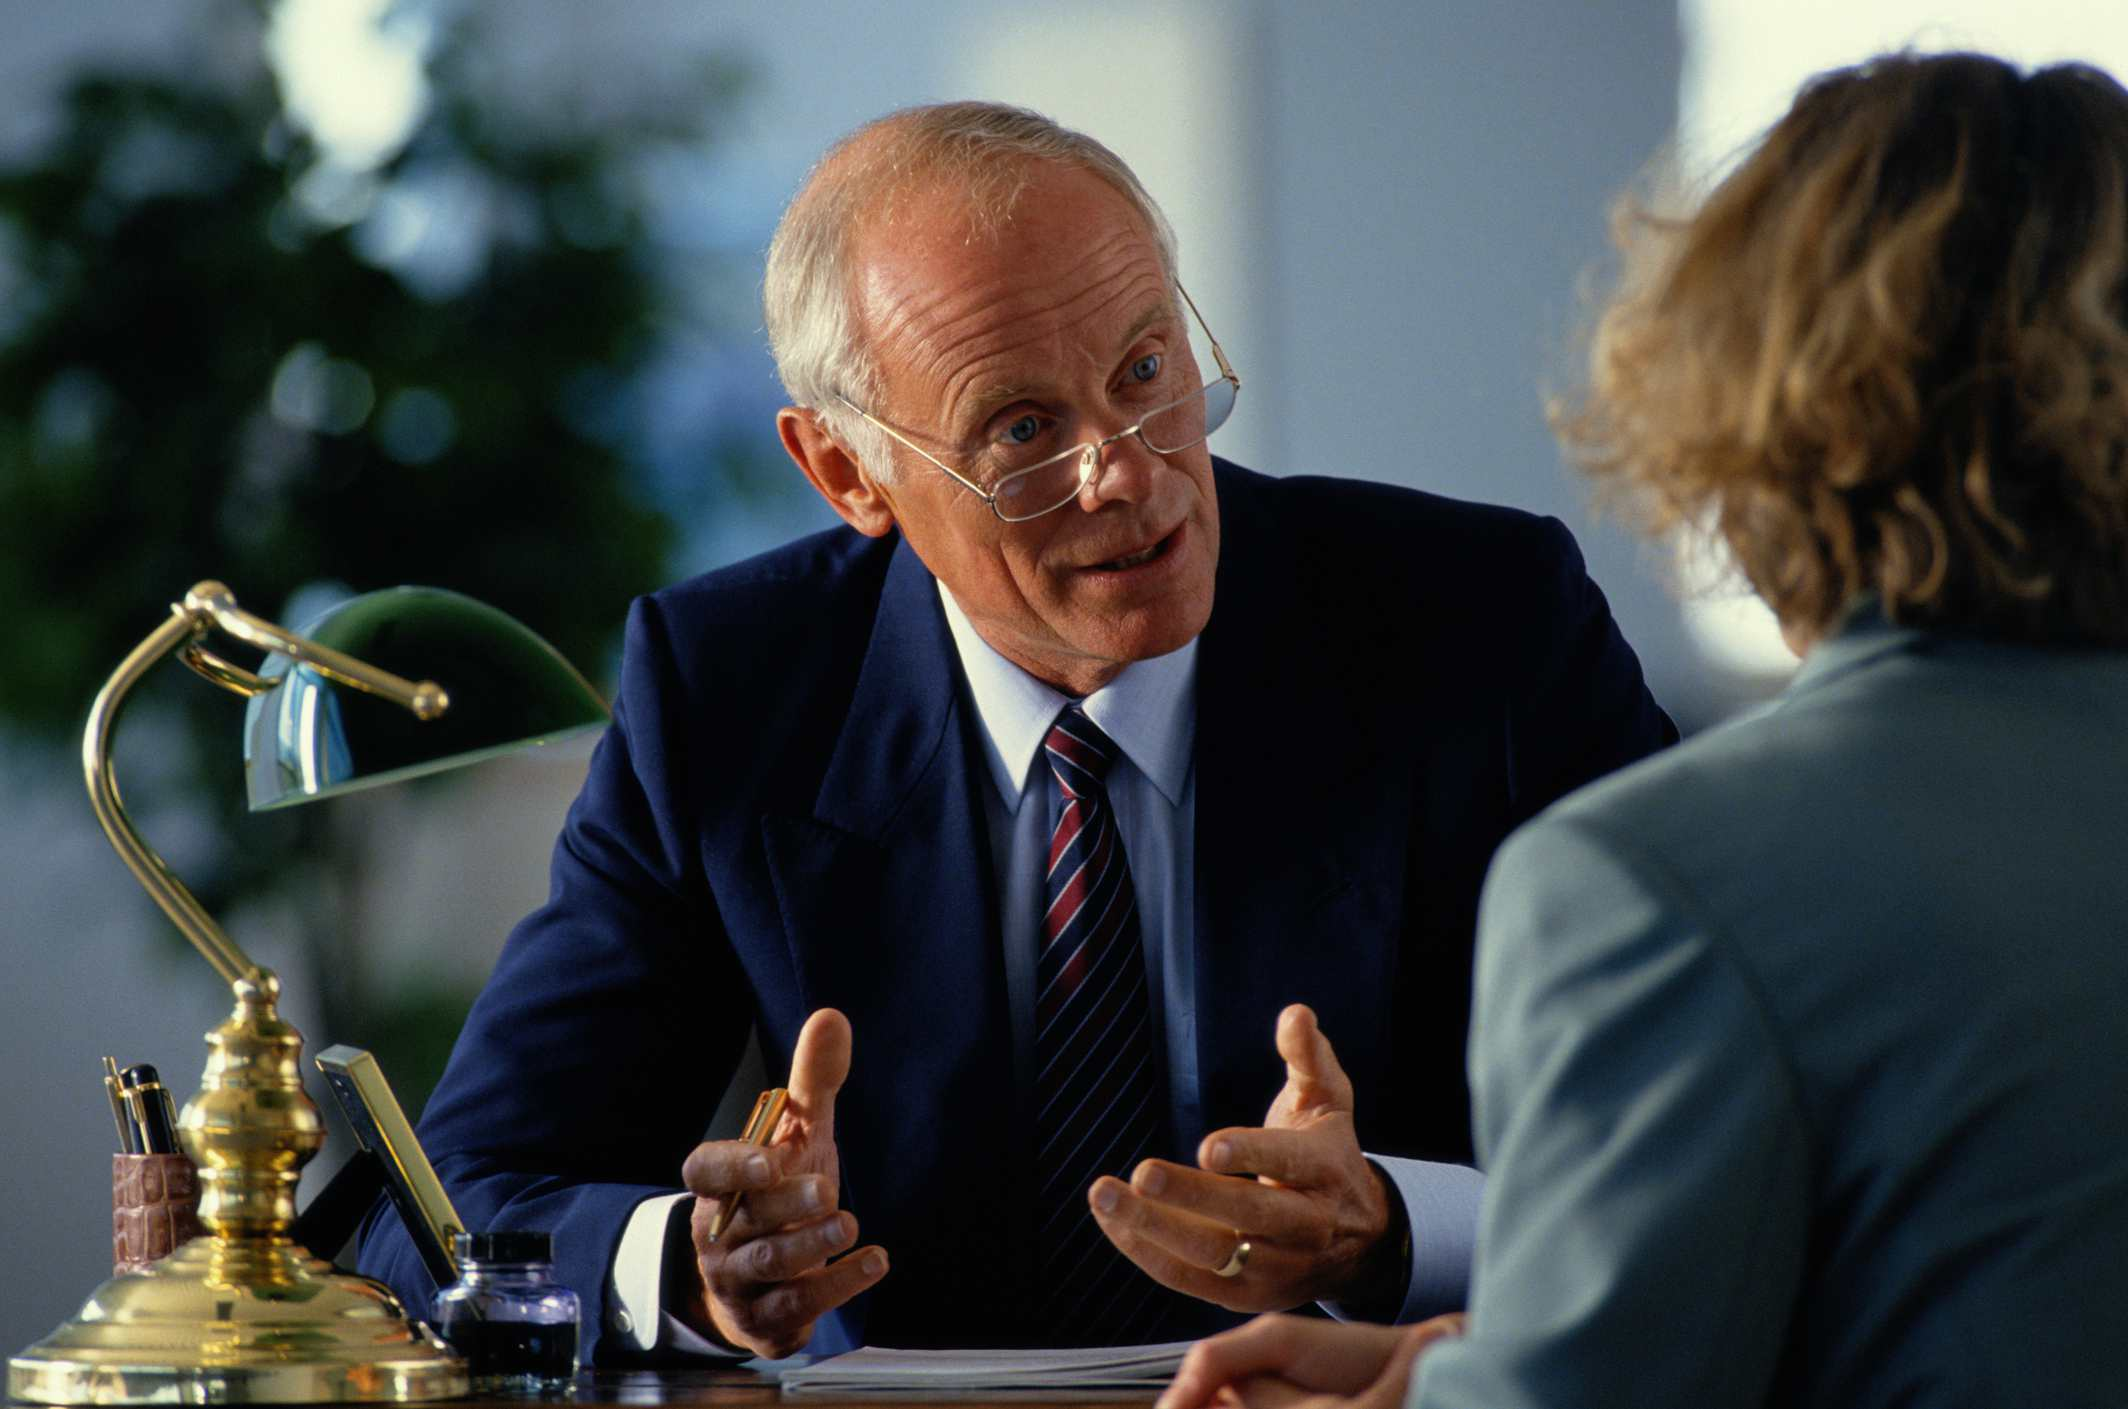 WOMAN MEETING WITH LAWYER OR LEGAL ADVISOR